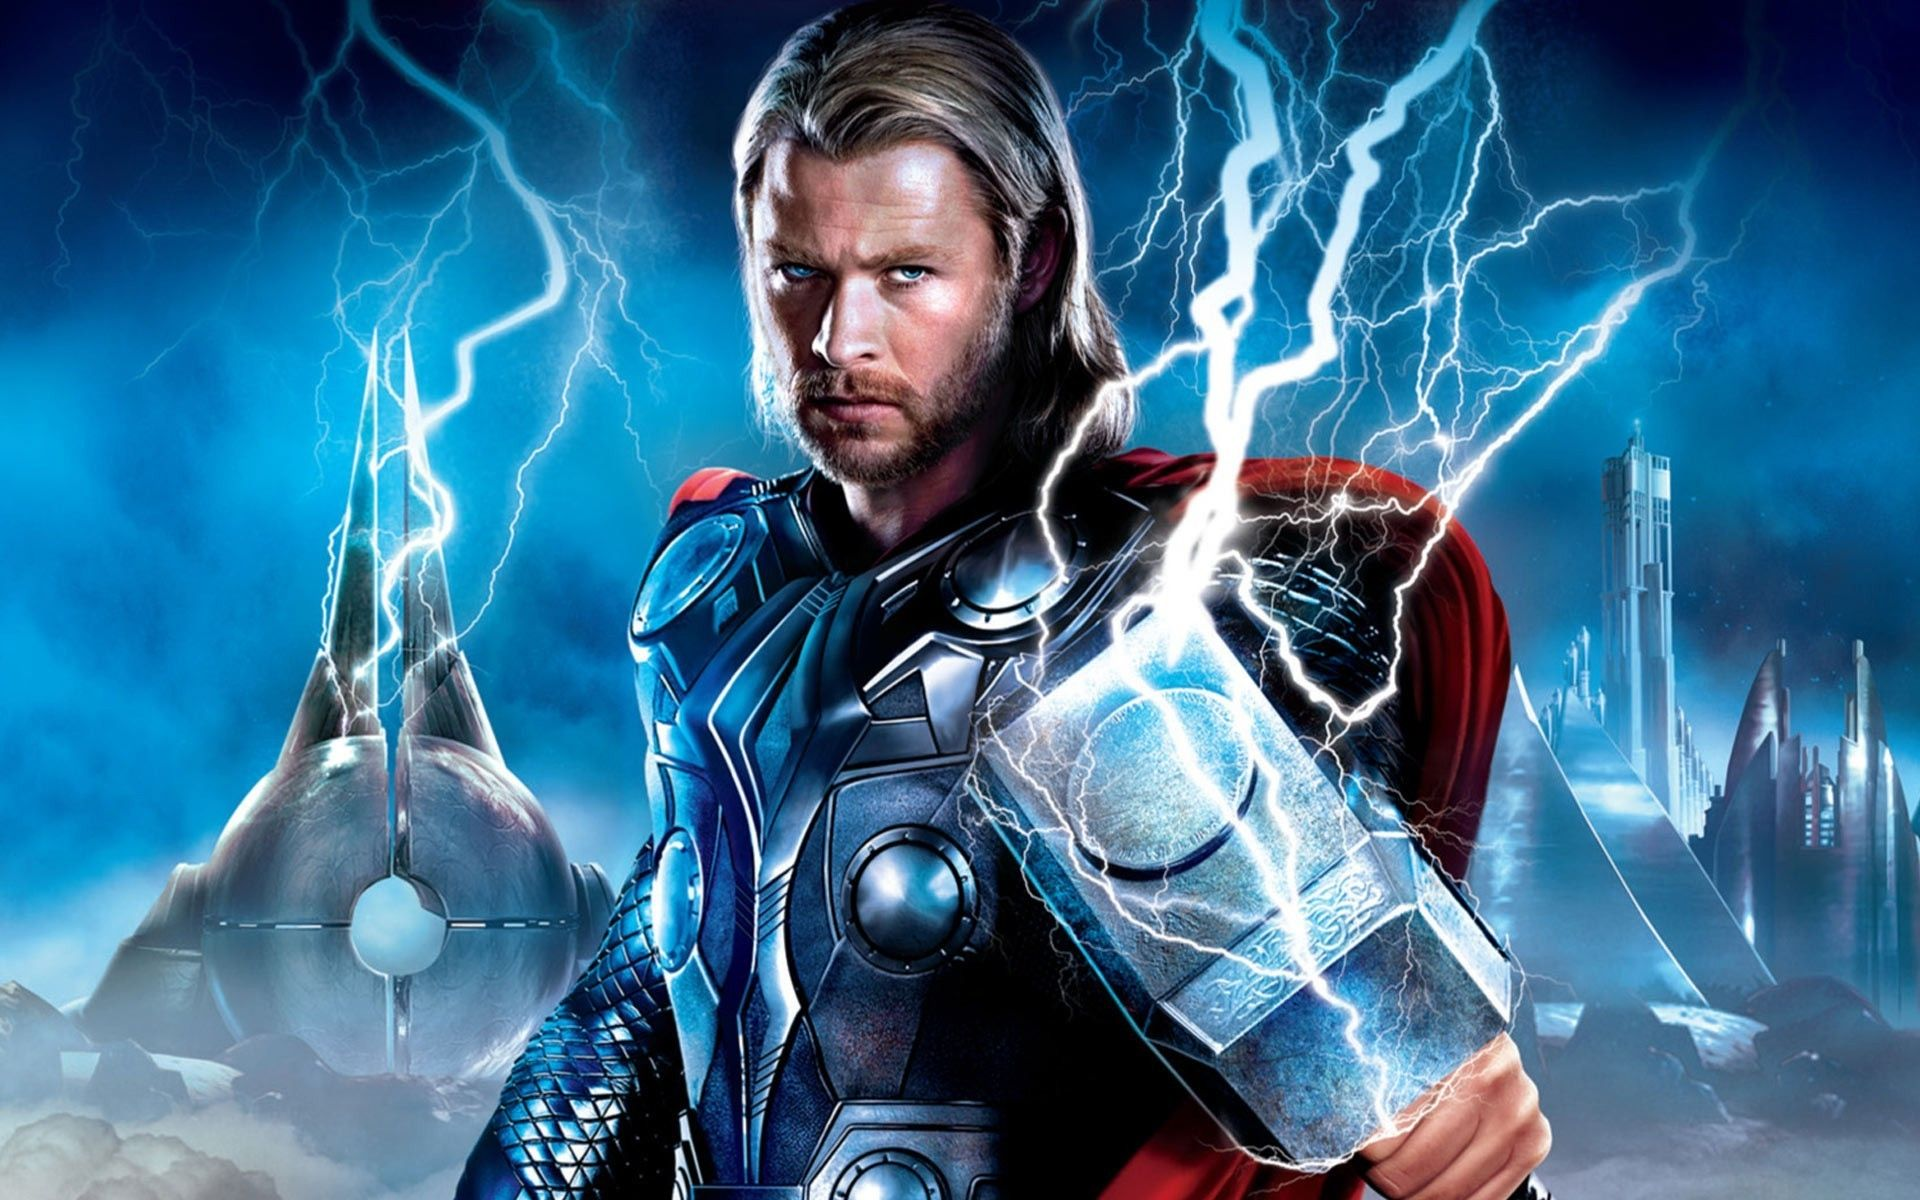 Hd wallpaper thor - Thor Hd Wallpapers For Desktop Download